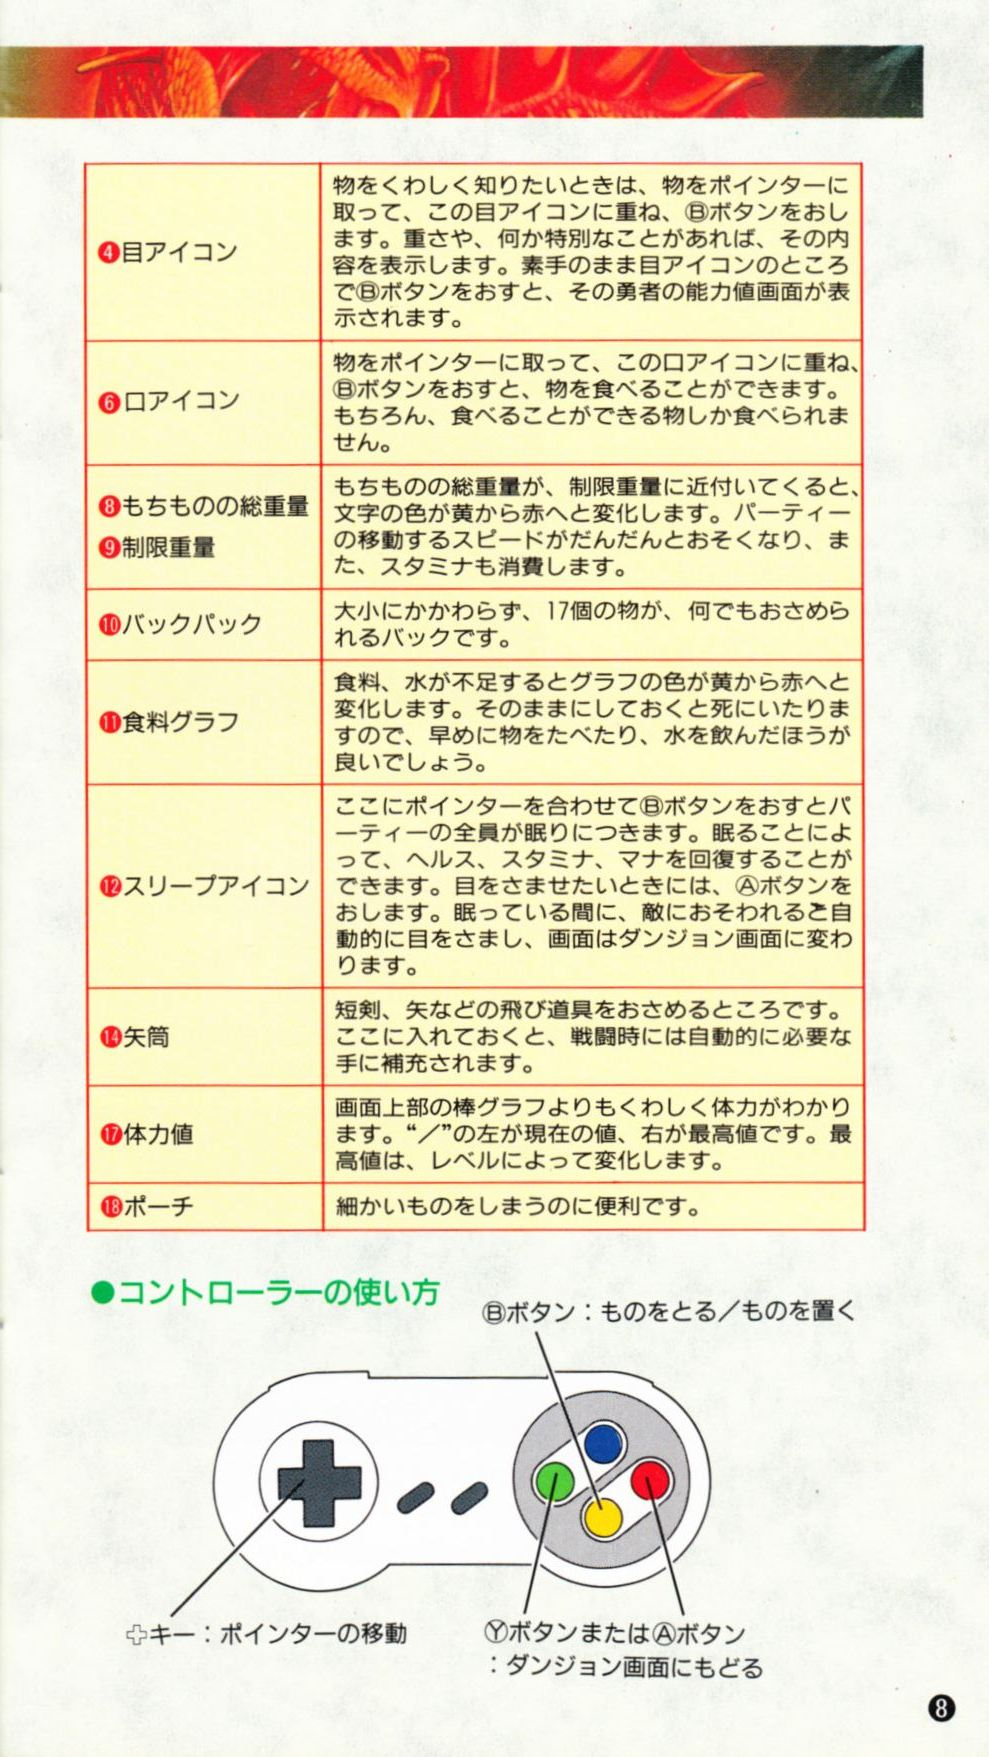 Game - Dungeon Master - JP - Super Famicom - Manual - Page 011 - Scan